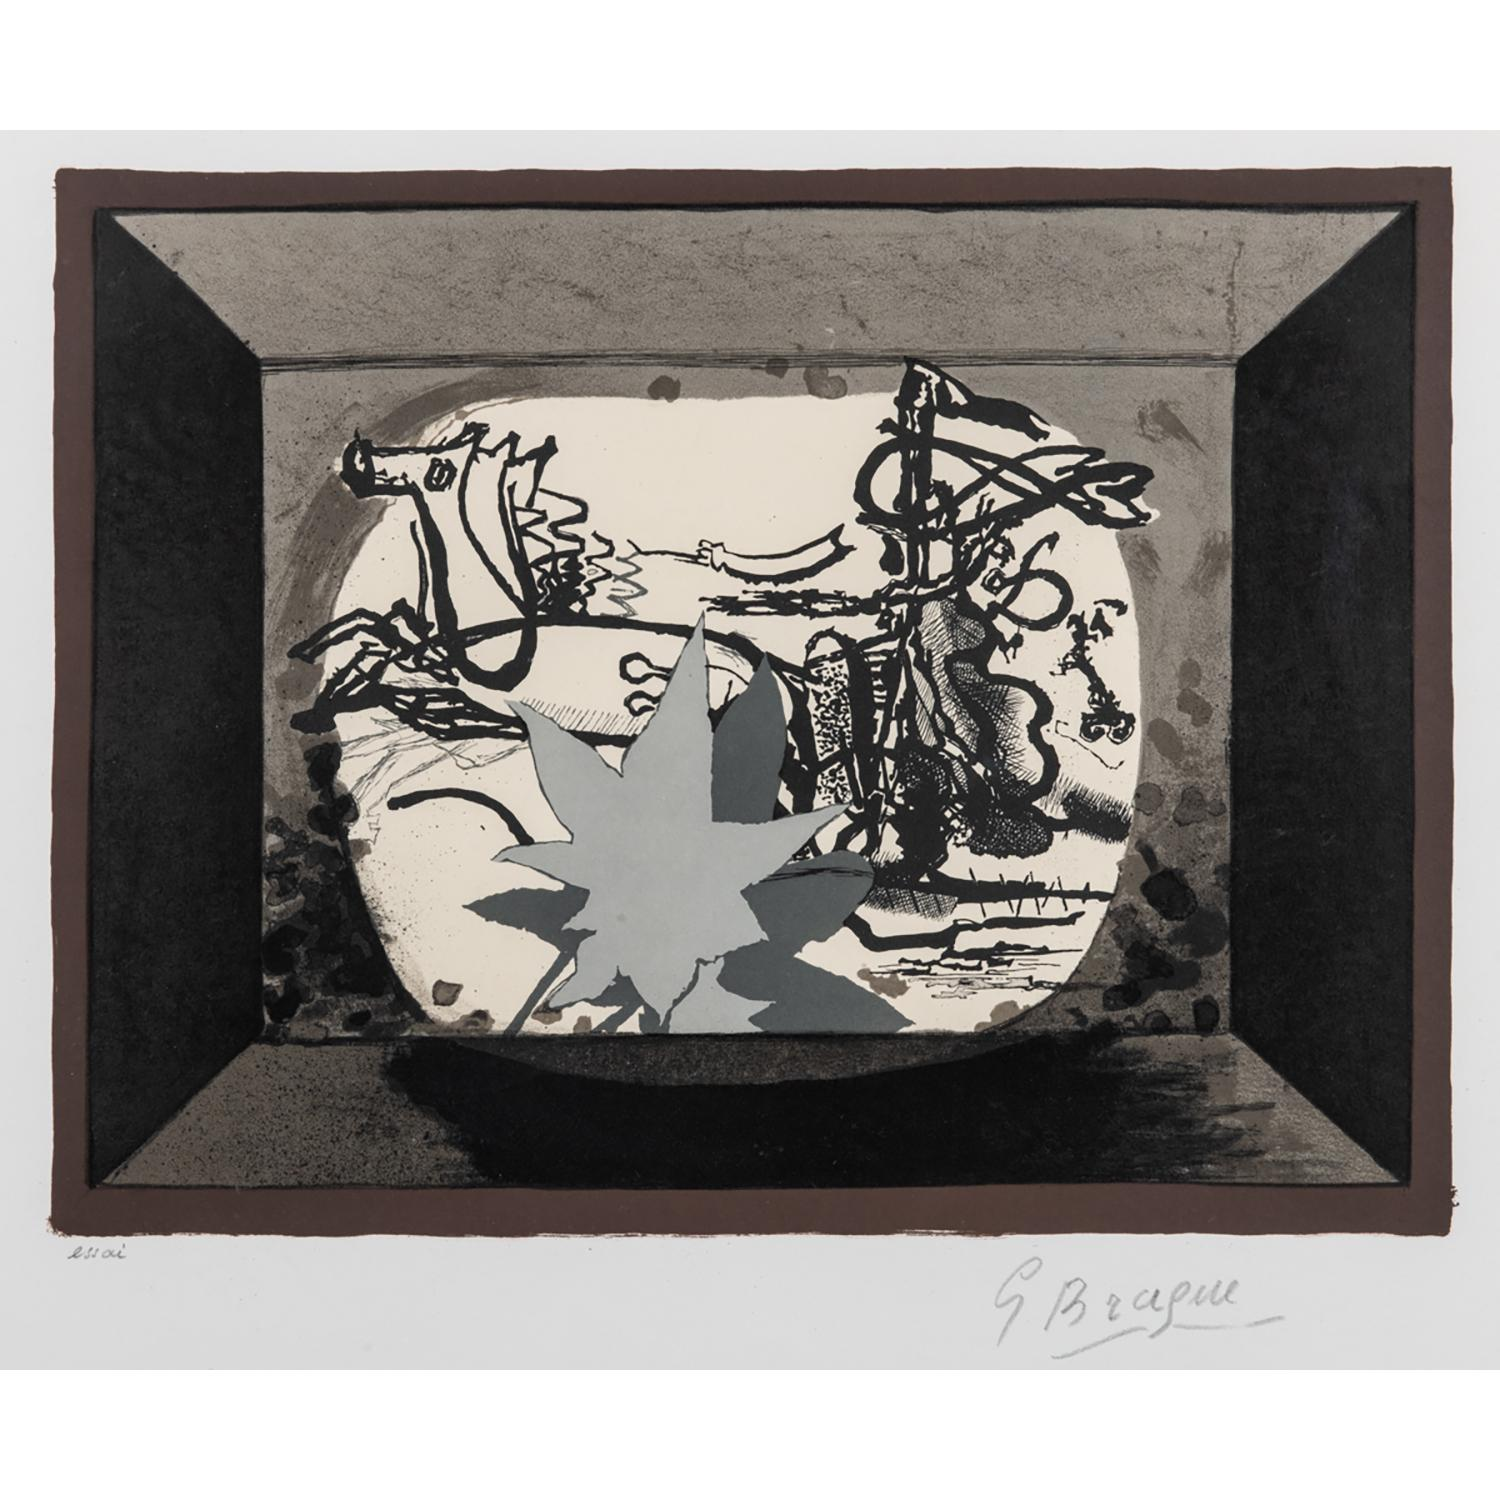 GEORGES BRAQUE (1882-1963) LE CHAR III, 1955